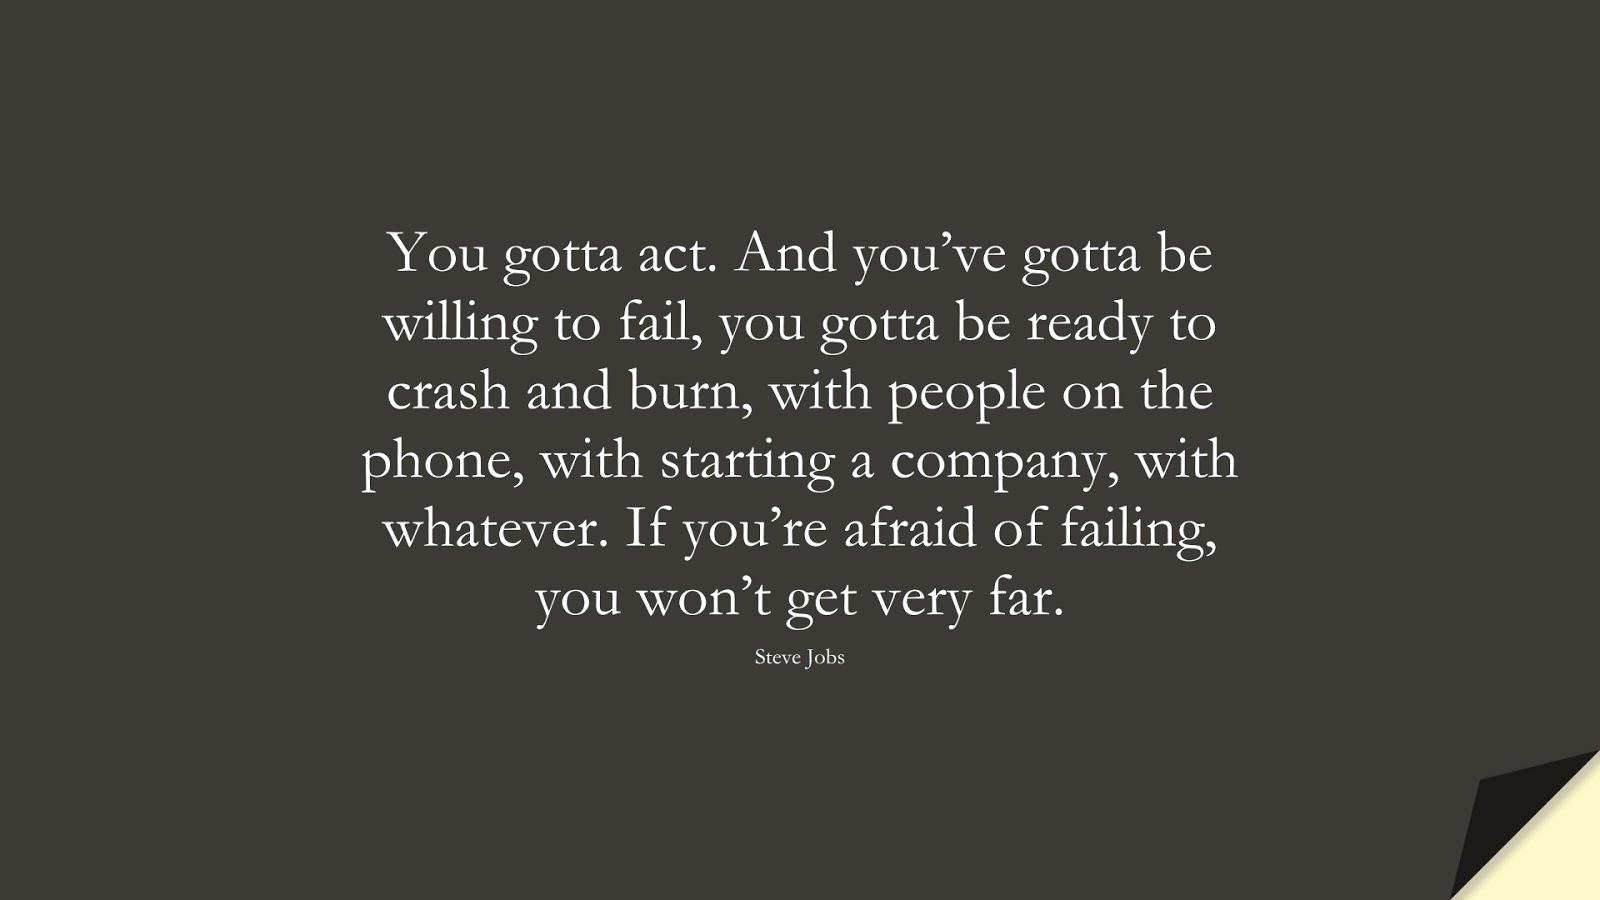 You gotta act. And you've gotta be willing to fail, you gotta be ready to crash and burn, with people on the phone, with starting a company, with whatever. If you're afraid of failing, you won't get very far. (Steve Jobs);  #SteveJobsQuotes